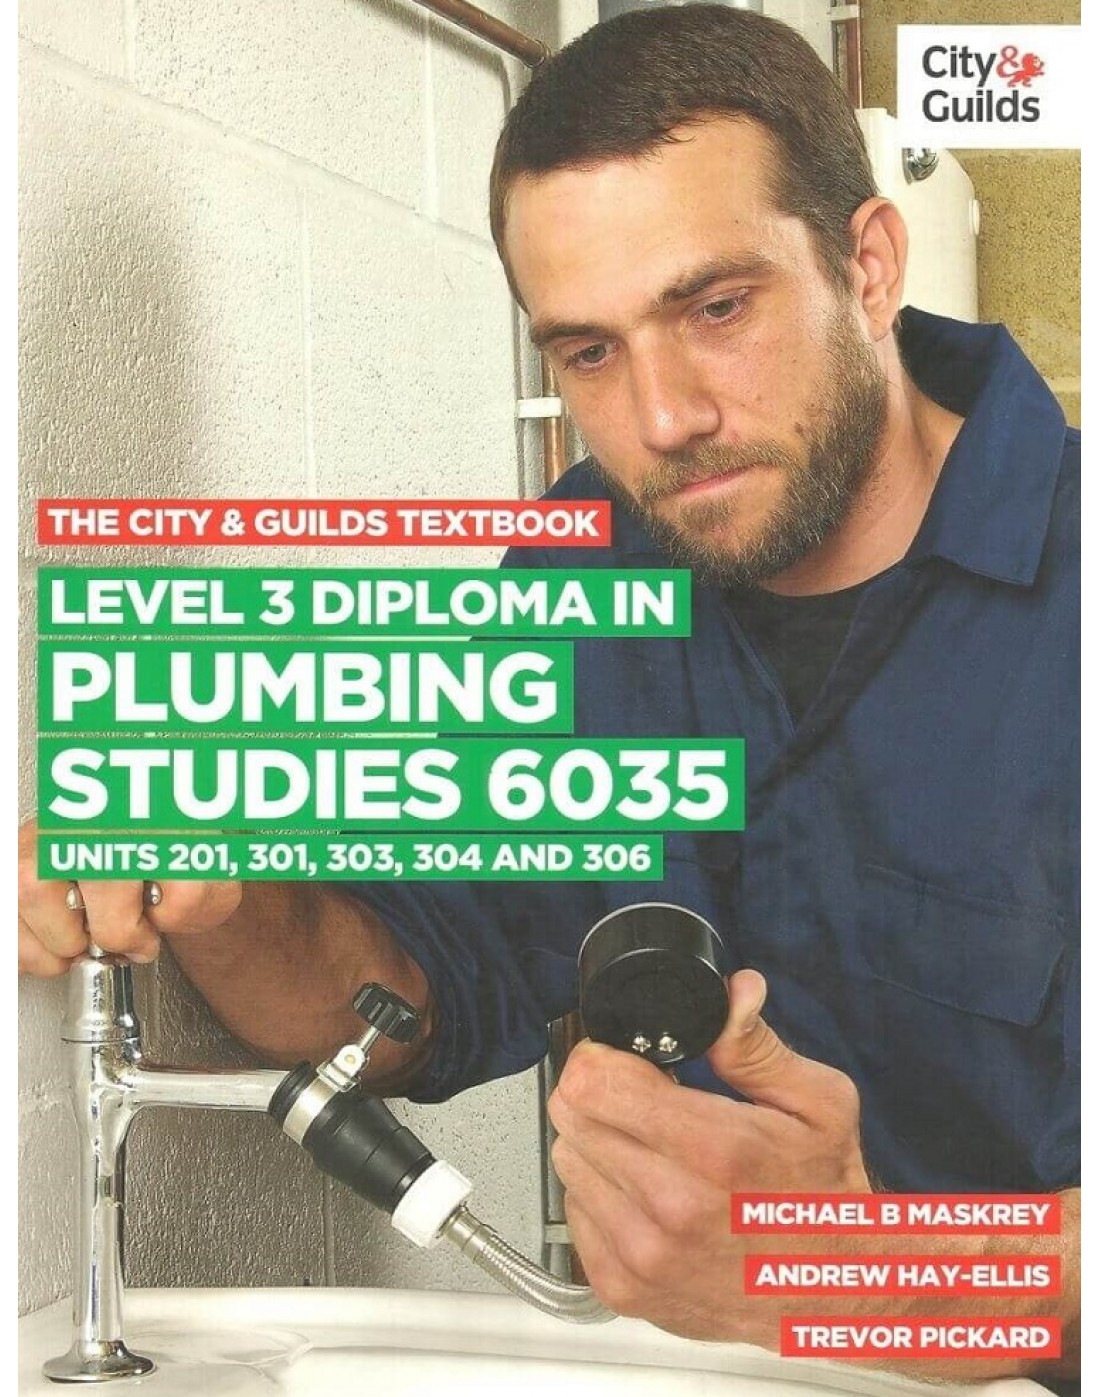 The City & Guilds Level 3 Diploma in Plumbing Studies 6035 Units 201,301,303,304 and 306 (PDF)